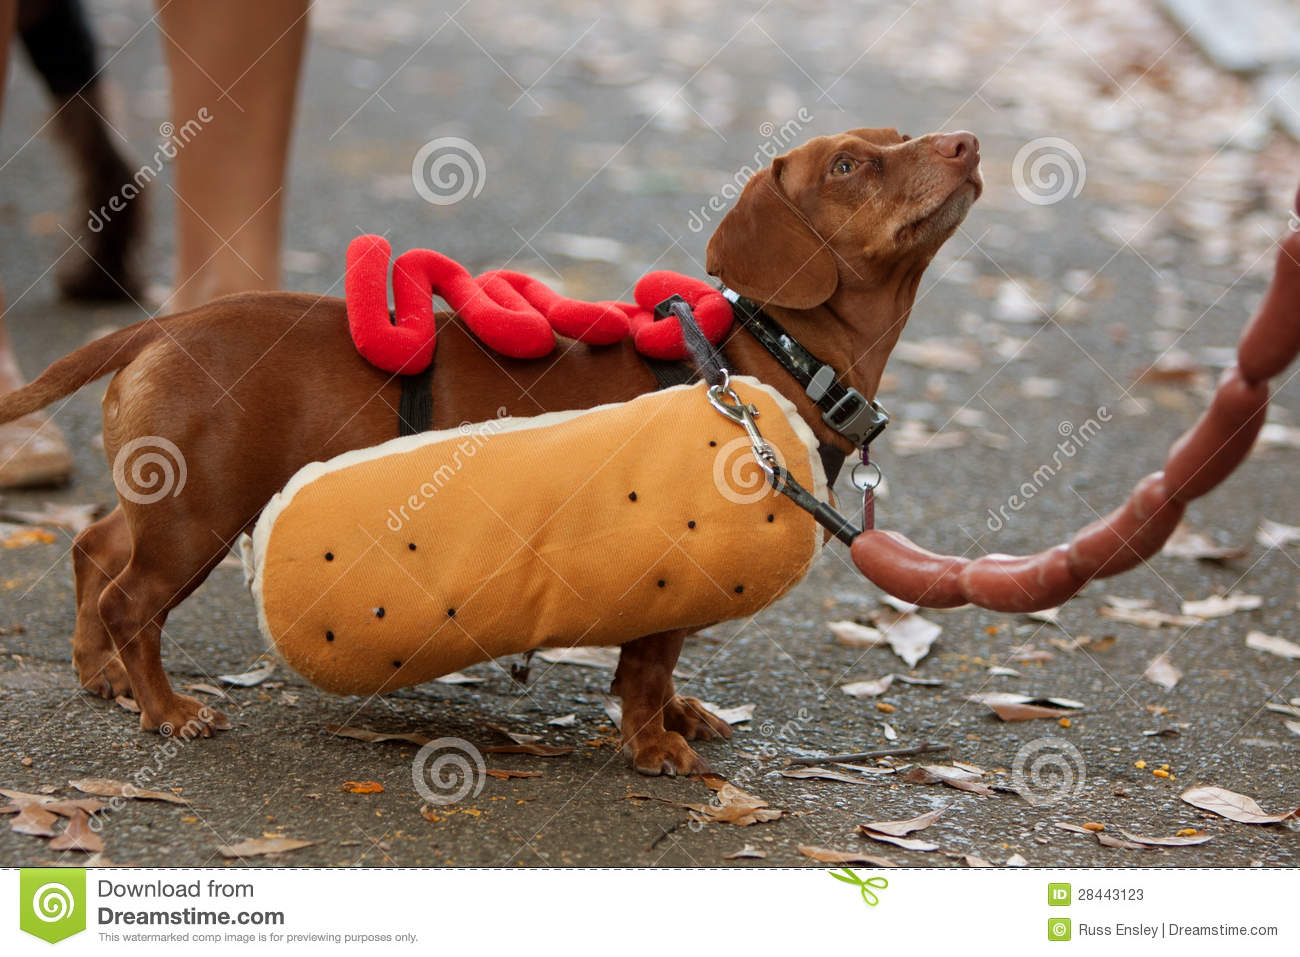 Dachshund Dressed In Hot Dog Costume For Halloween